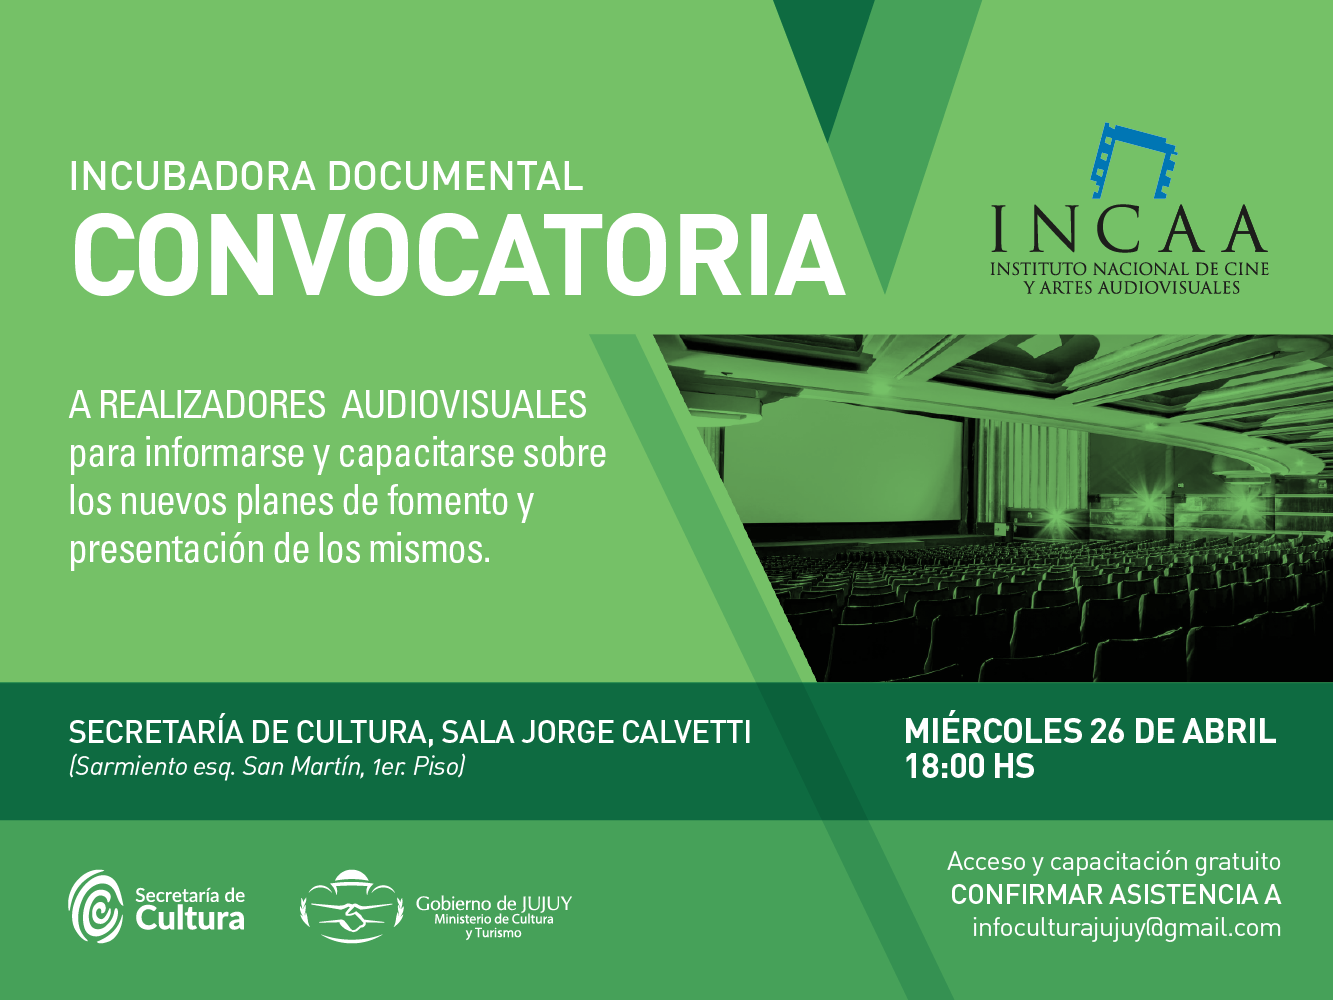 INCAA en Jujuy Incubadora documental